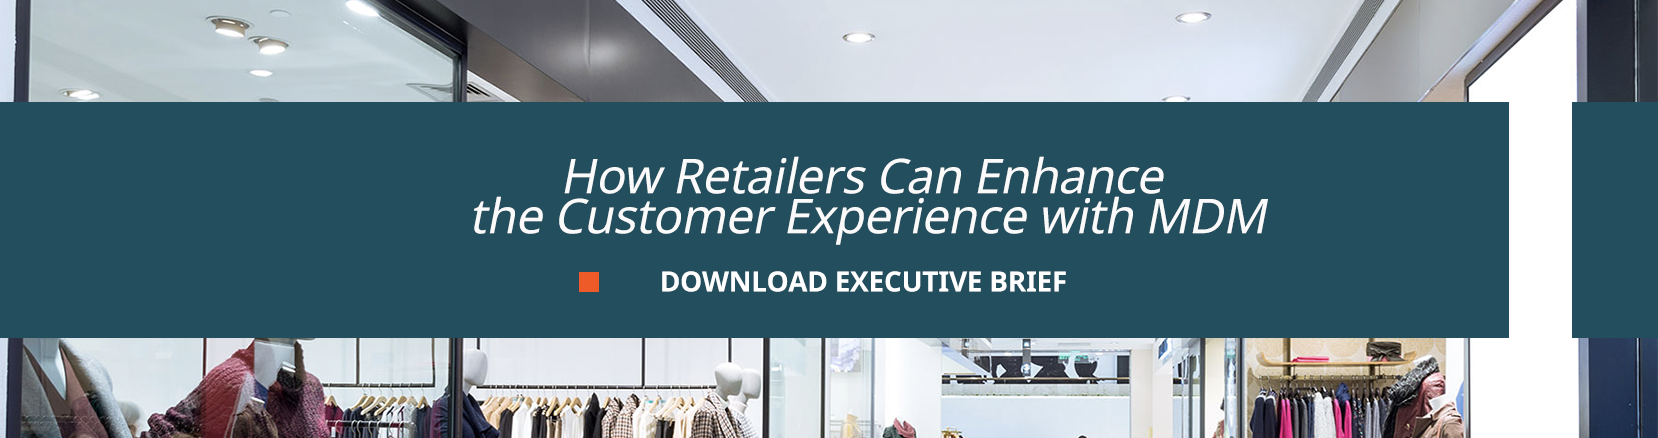 how retailers can enhance the customer experience with mdm